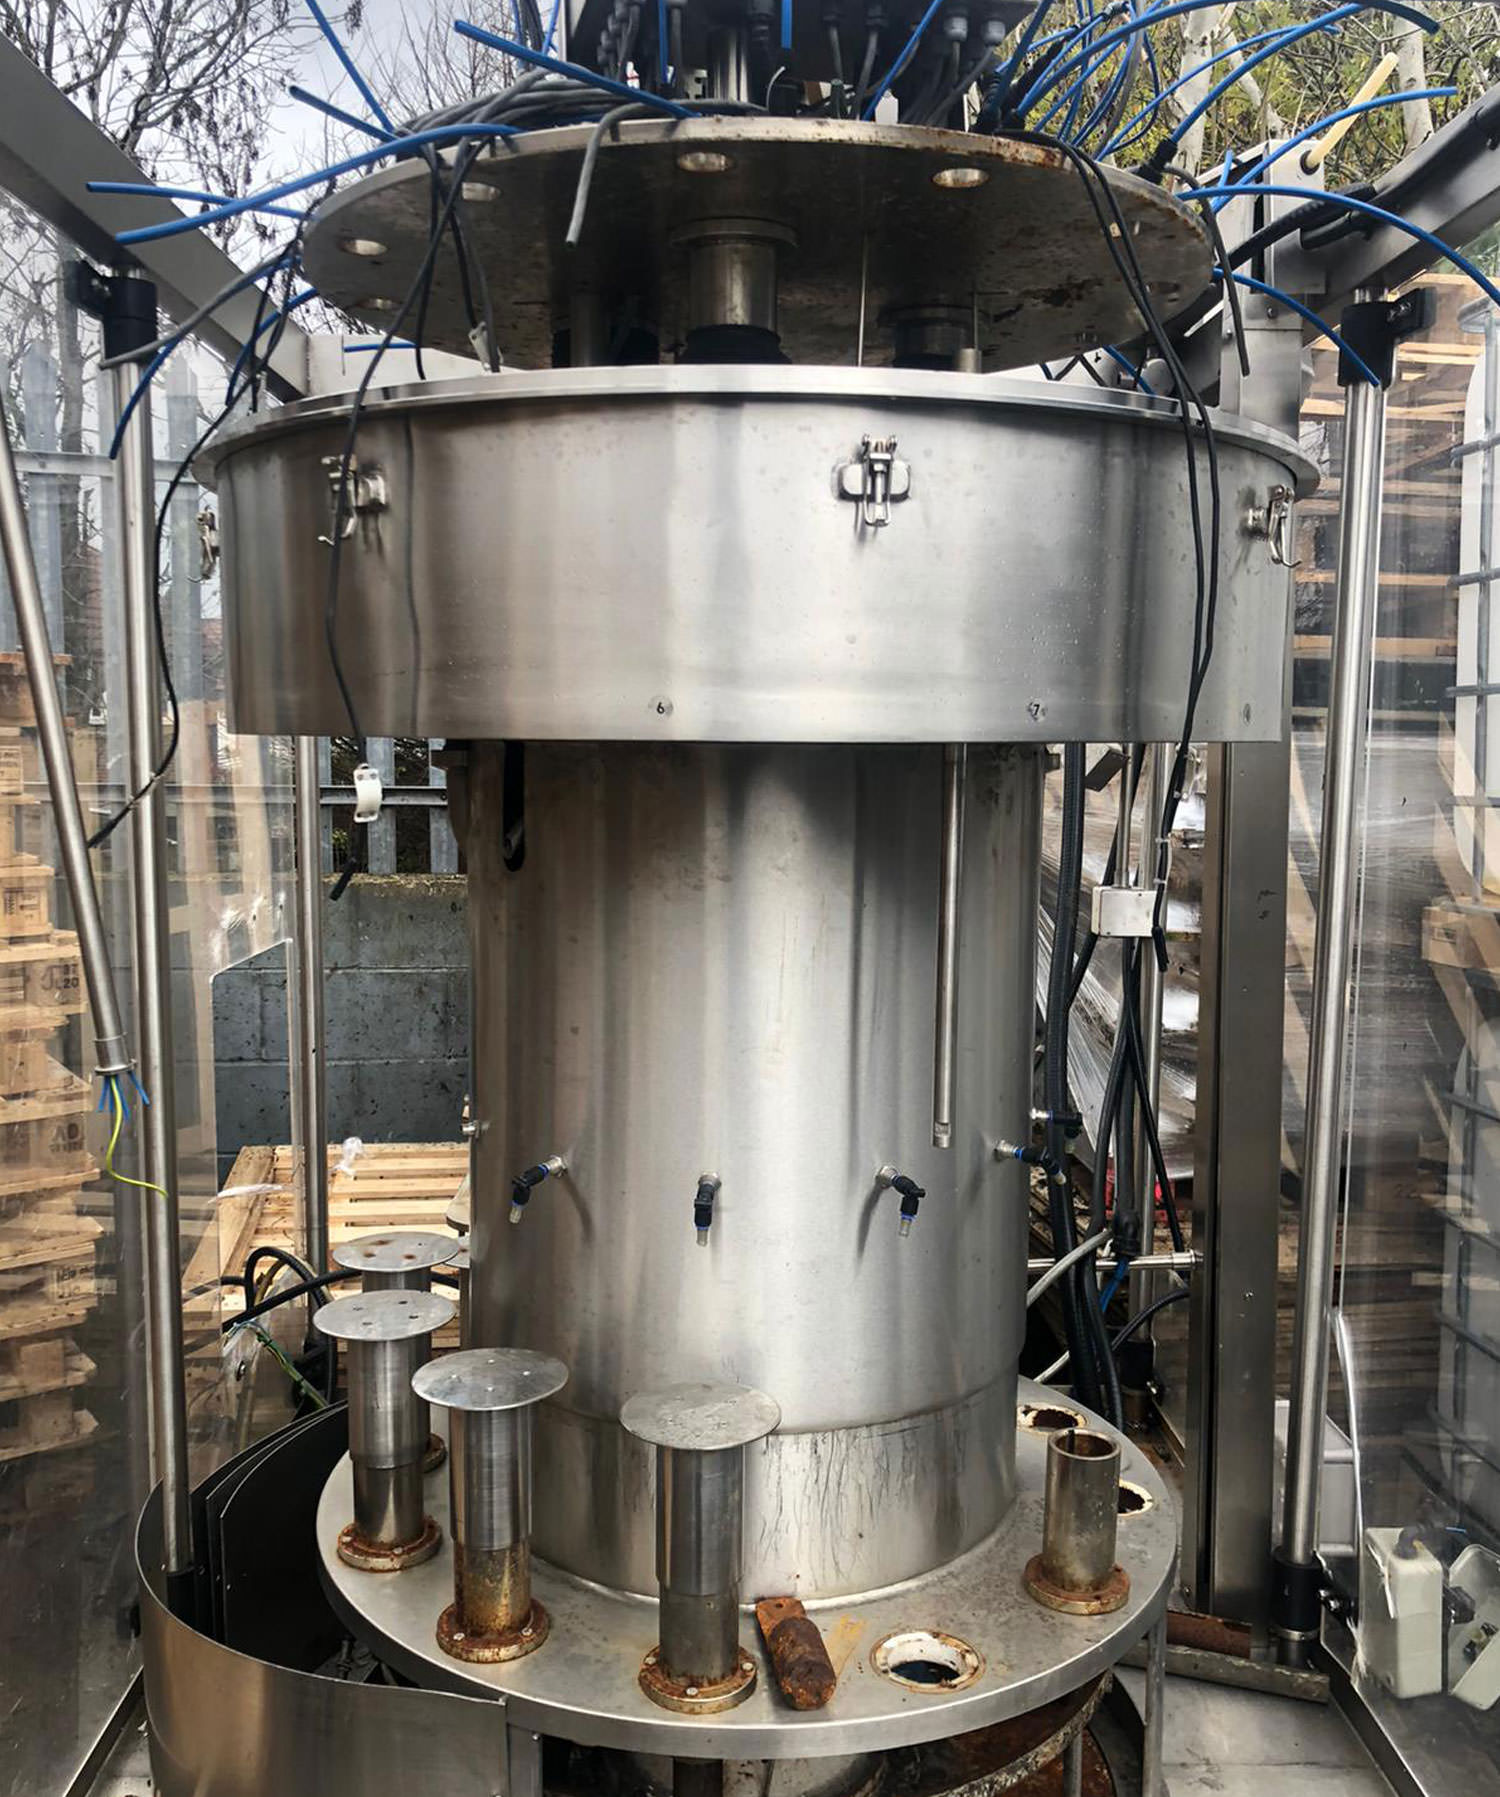 This tired Gravfil Nexus filler was reconditioned and is now like new